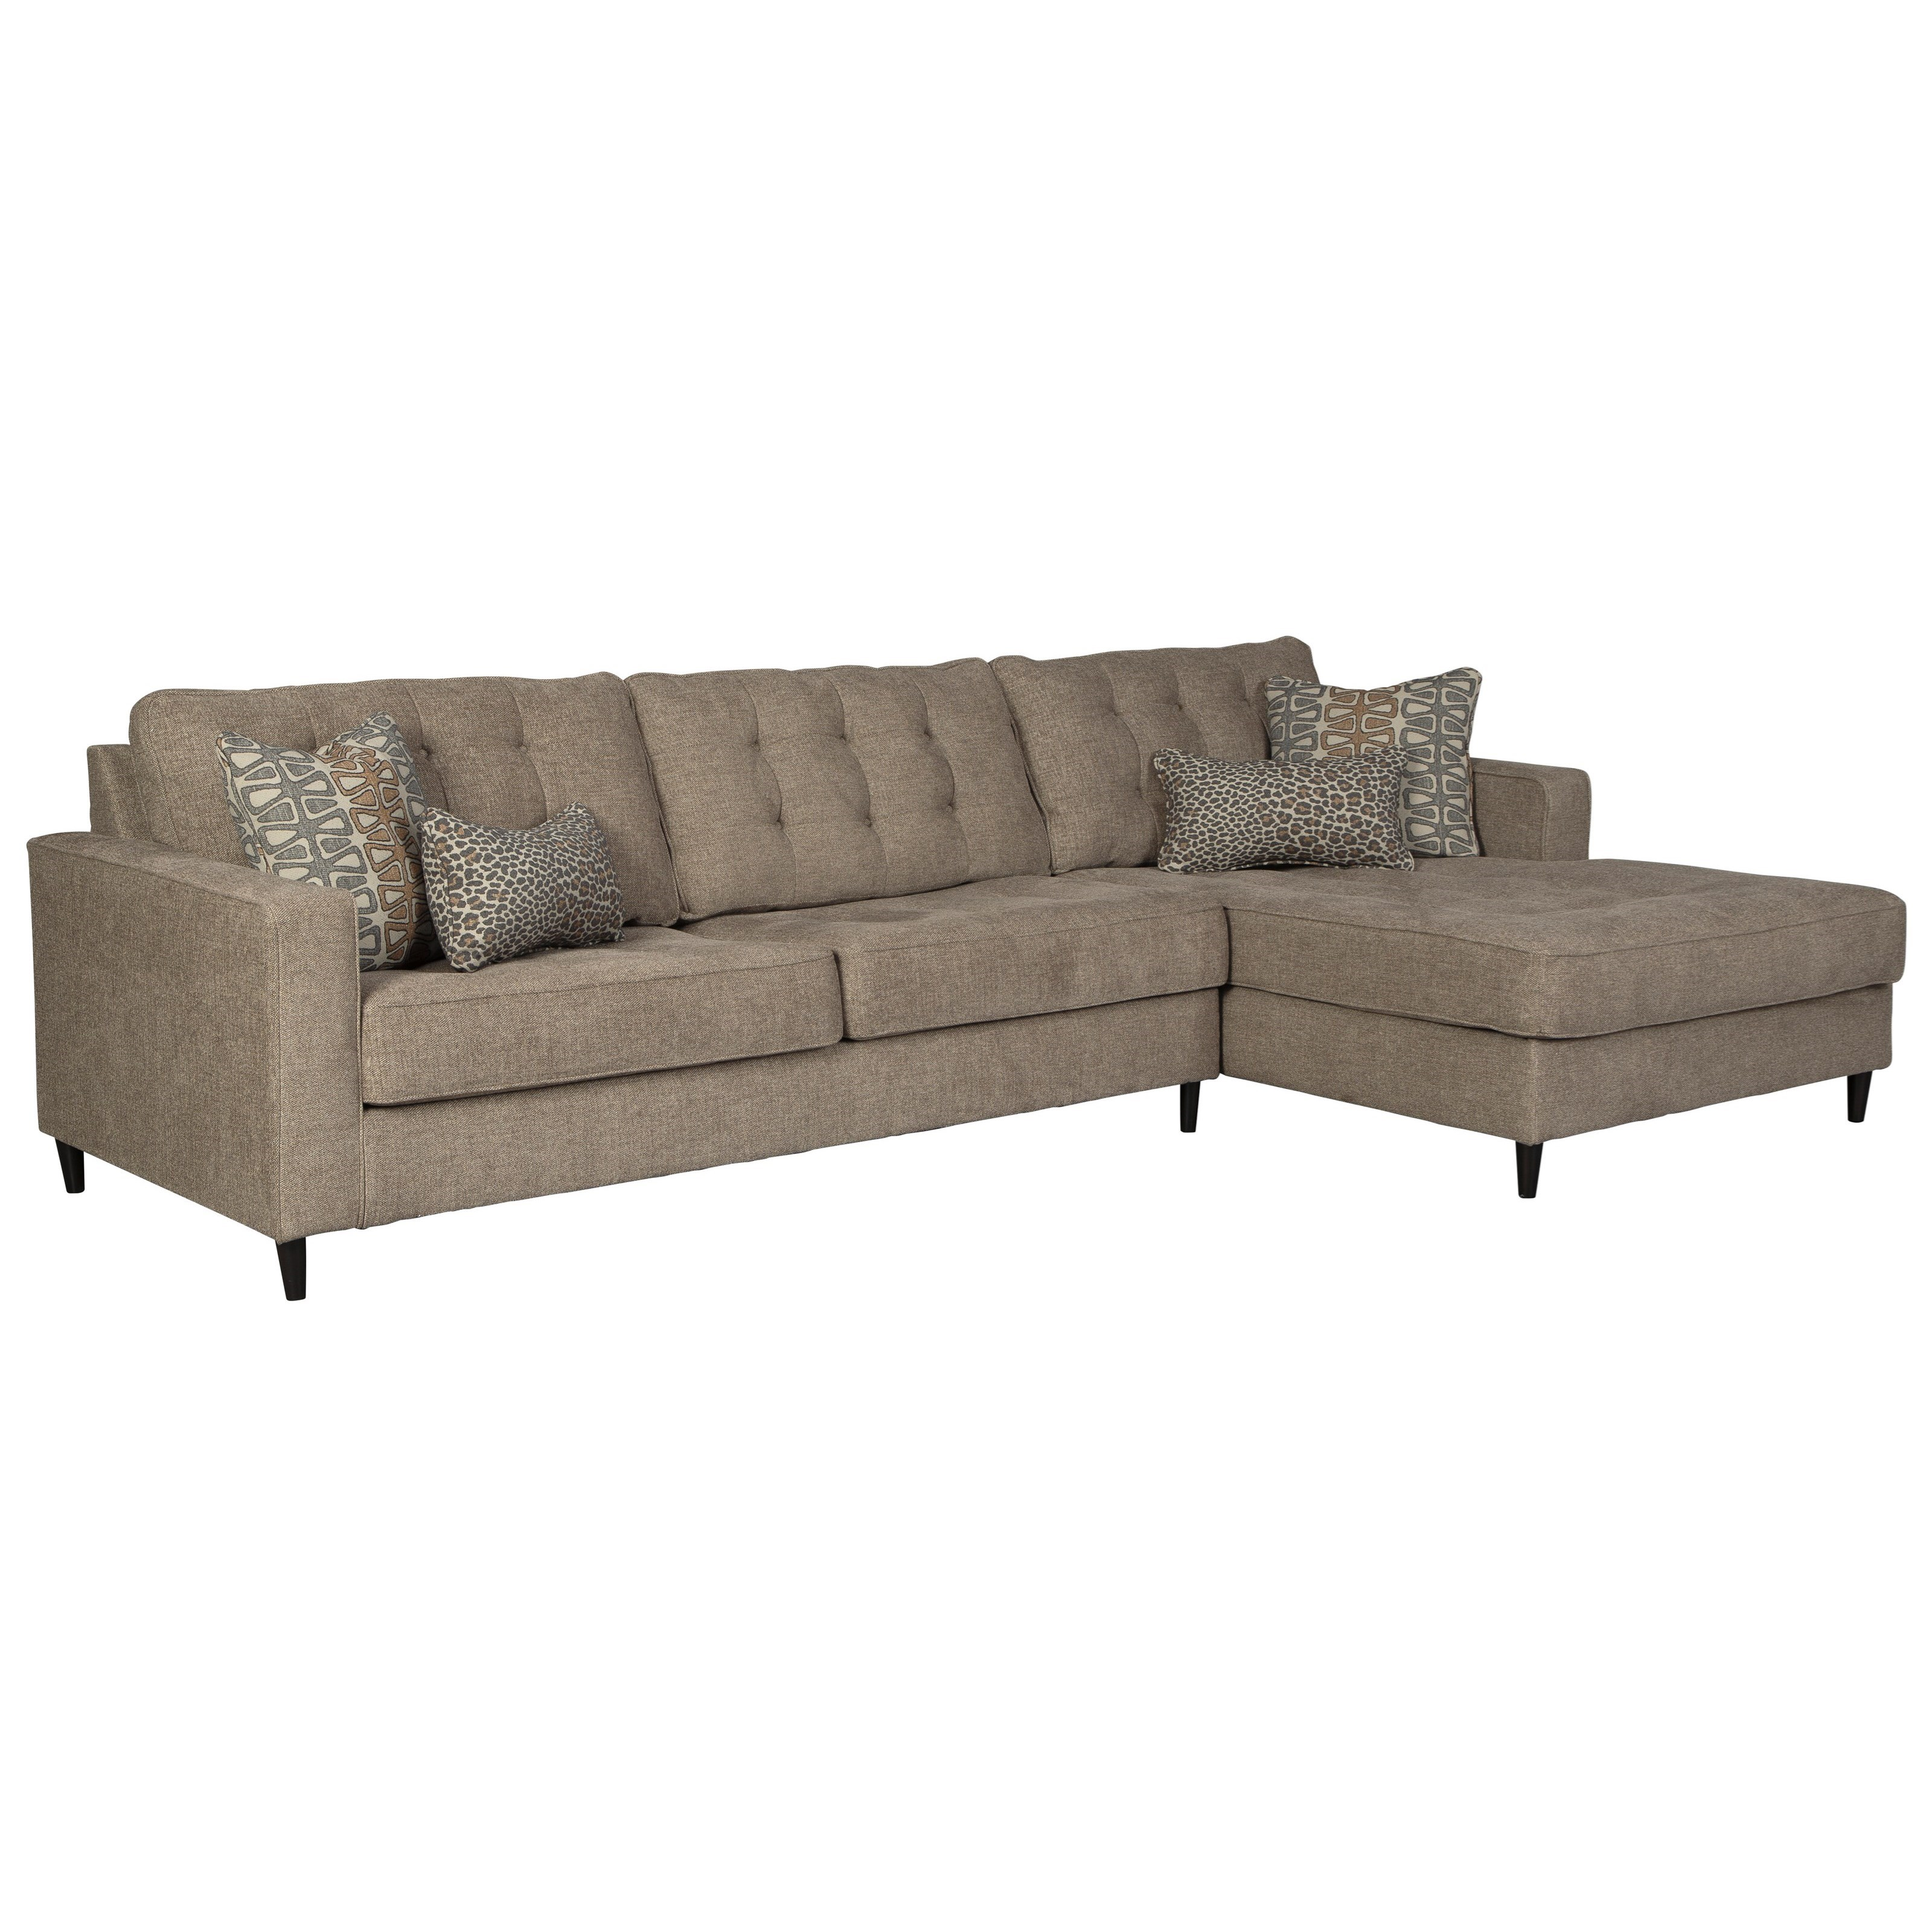 Flintshire 3 Seat Sectional Sofa w/ RAF Chaise by Signature Design by Ashley at Beck's Furniture